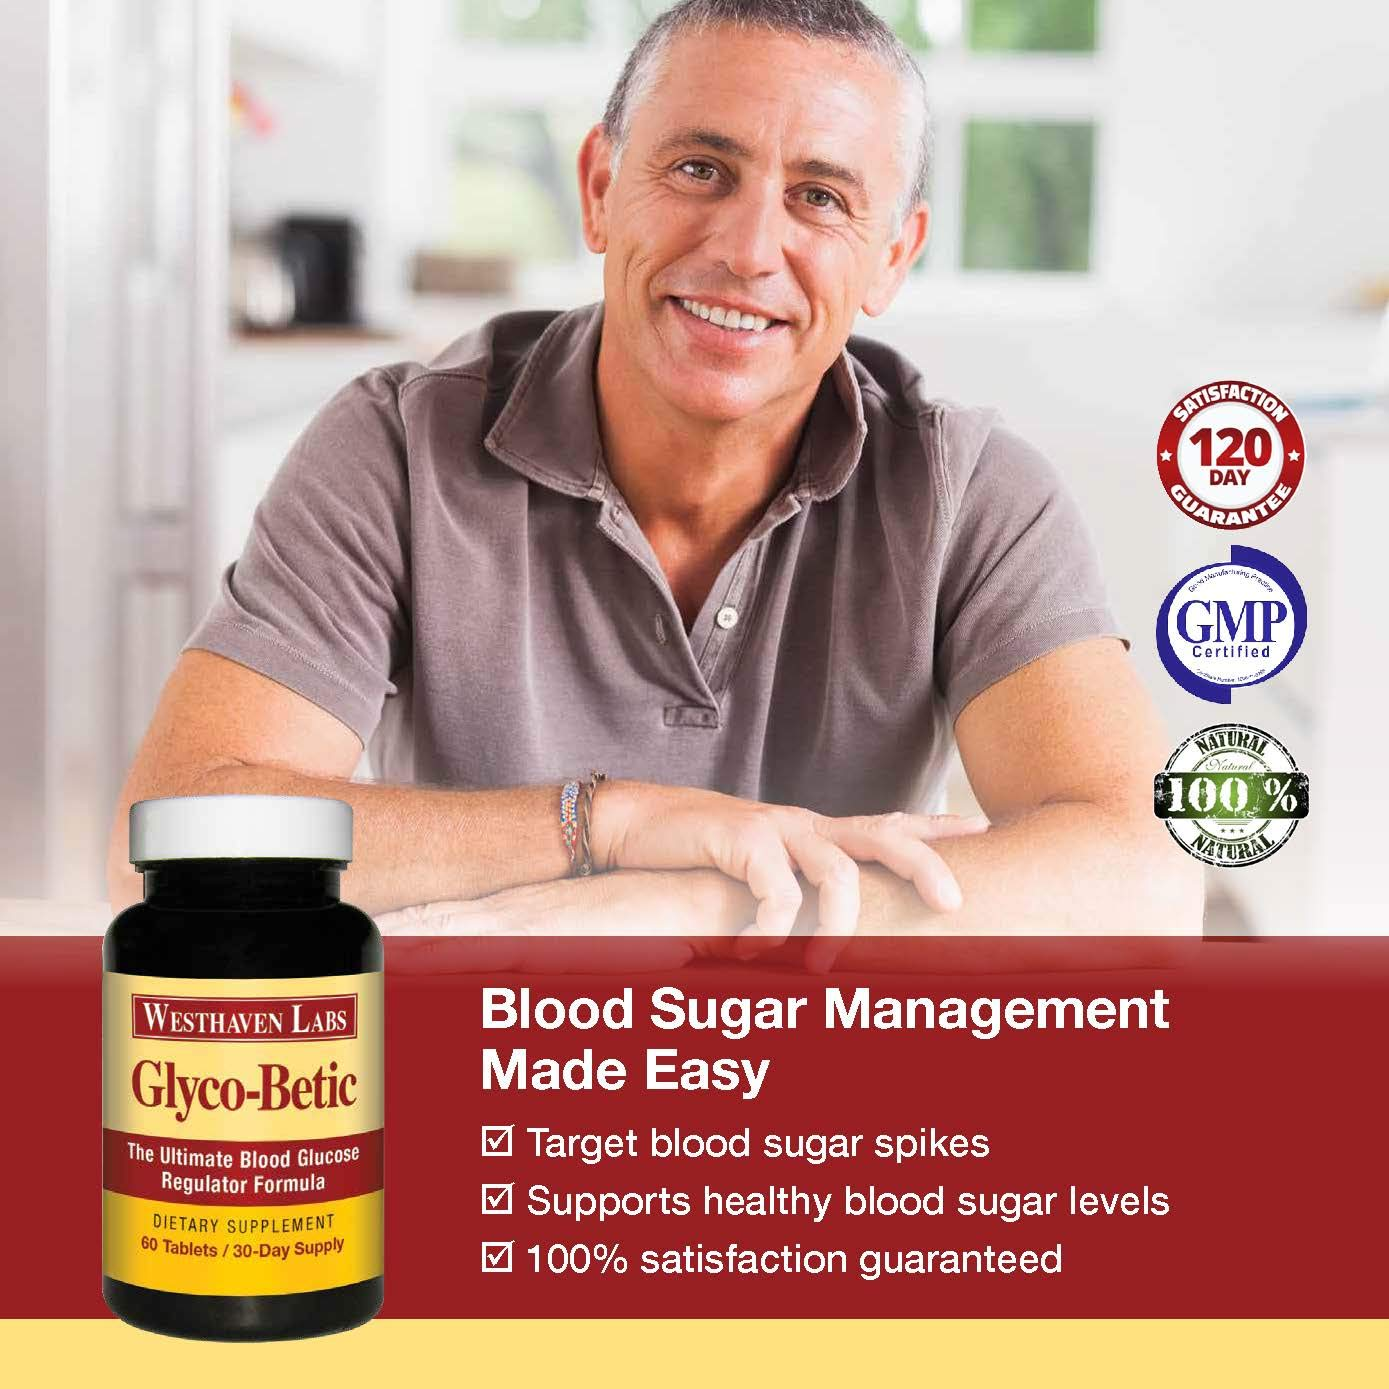 Glyco-Betic All-Natural Dietary Supplement Supports Healthy Blood Sugar Levels and addresses Blood Sugar Spikes. Promotes More Energy, Vibrant Health and Vigor. 180 Day Supply.